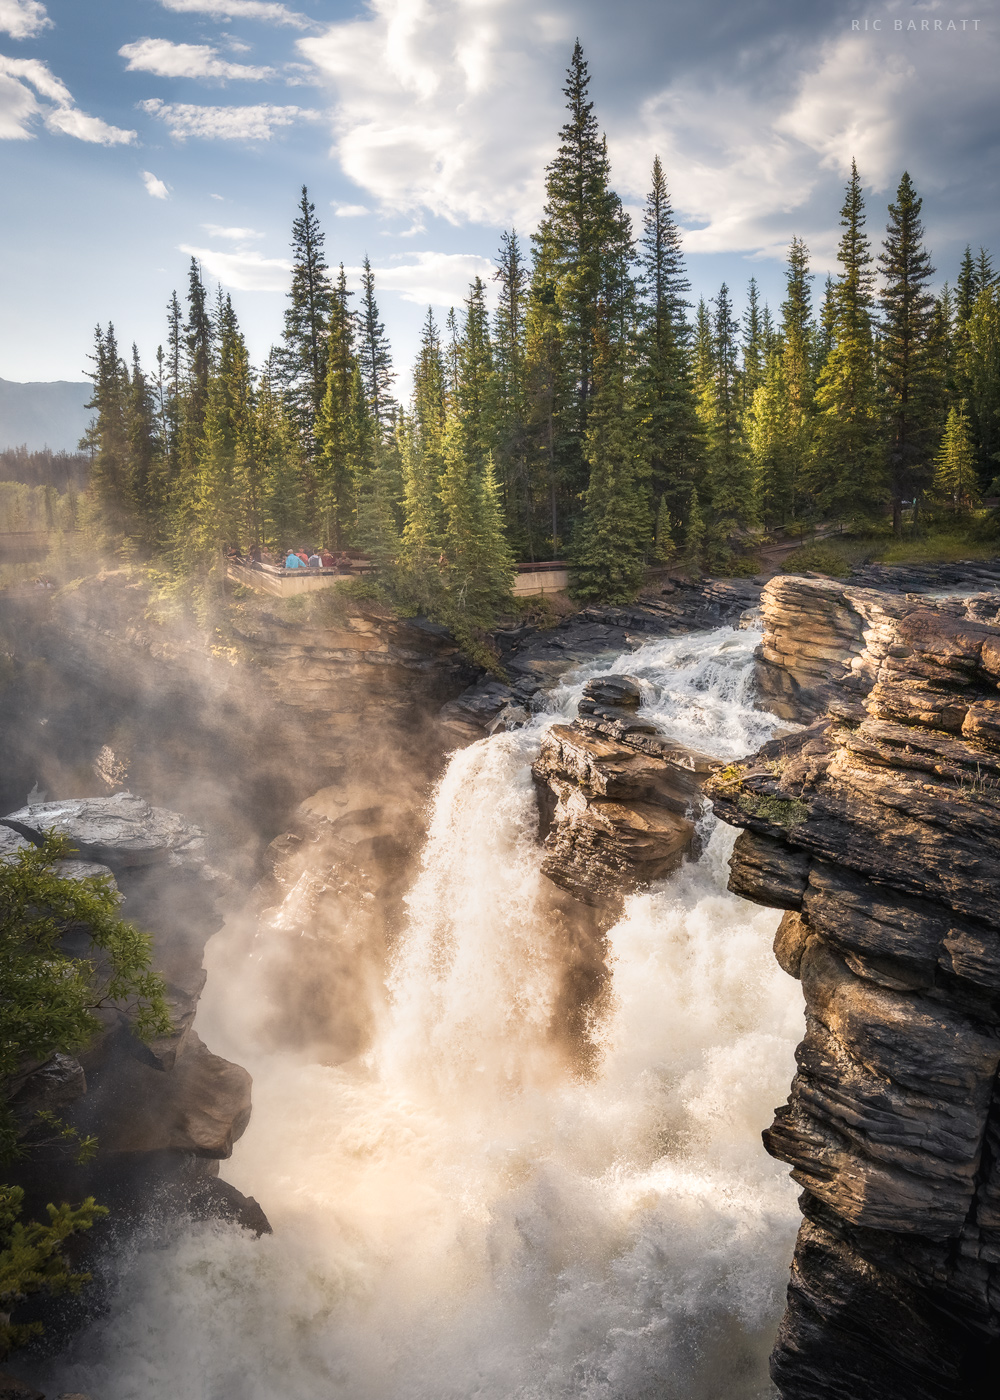 Thunderous waterfall cascading over a cliff in Canadian forest land.